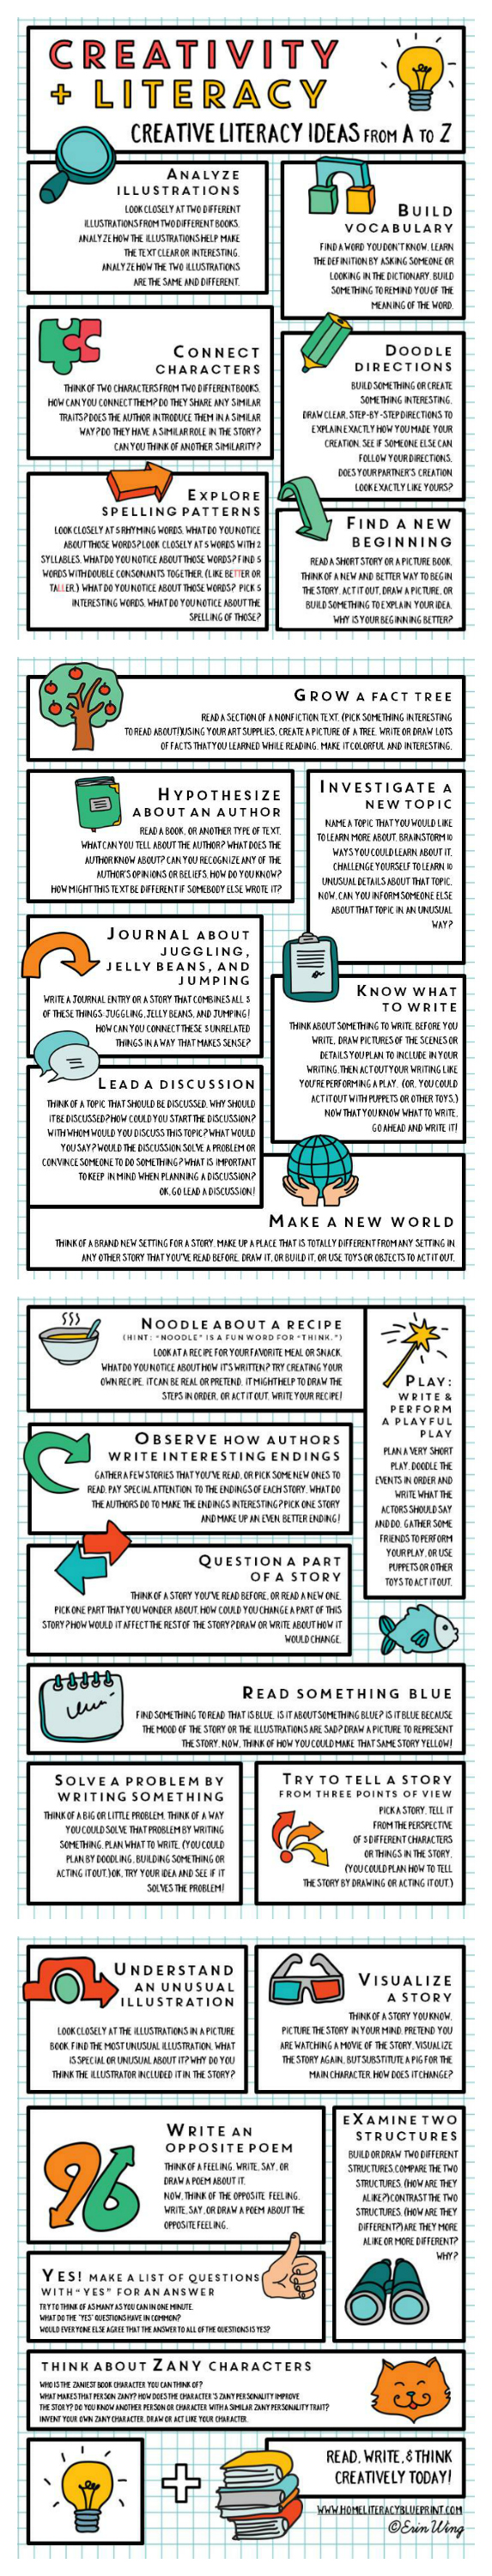 Creativity and Literacy from A to Z